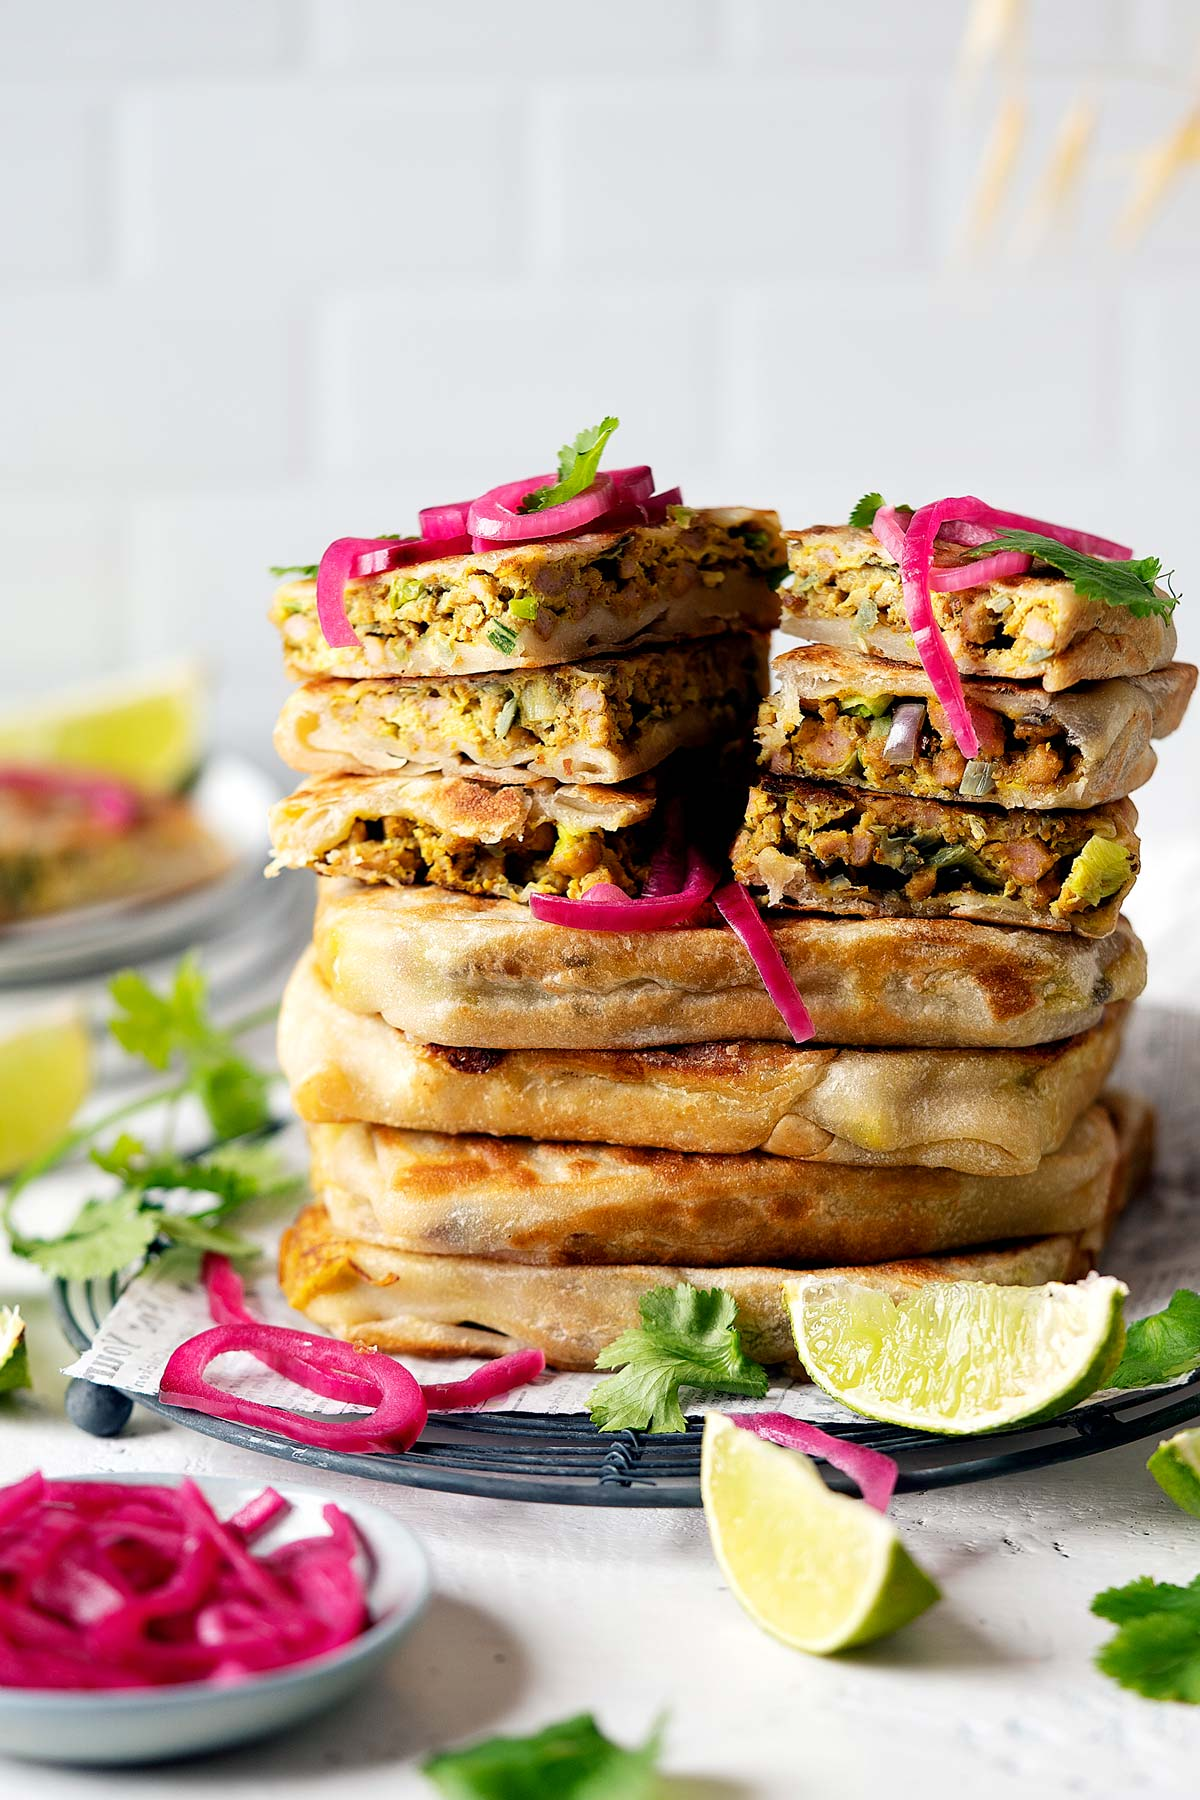 Whole and sliced chicken murtabak flatbreads stacked